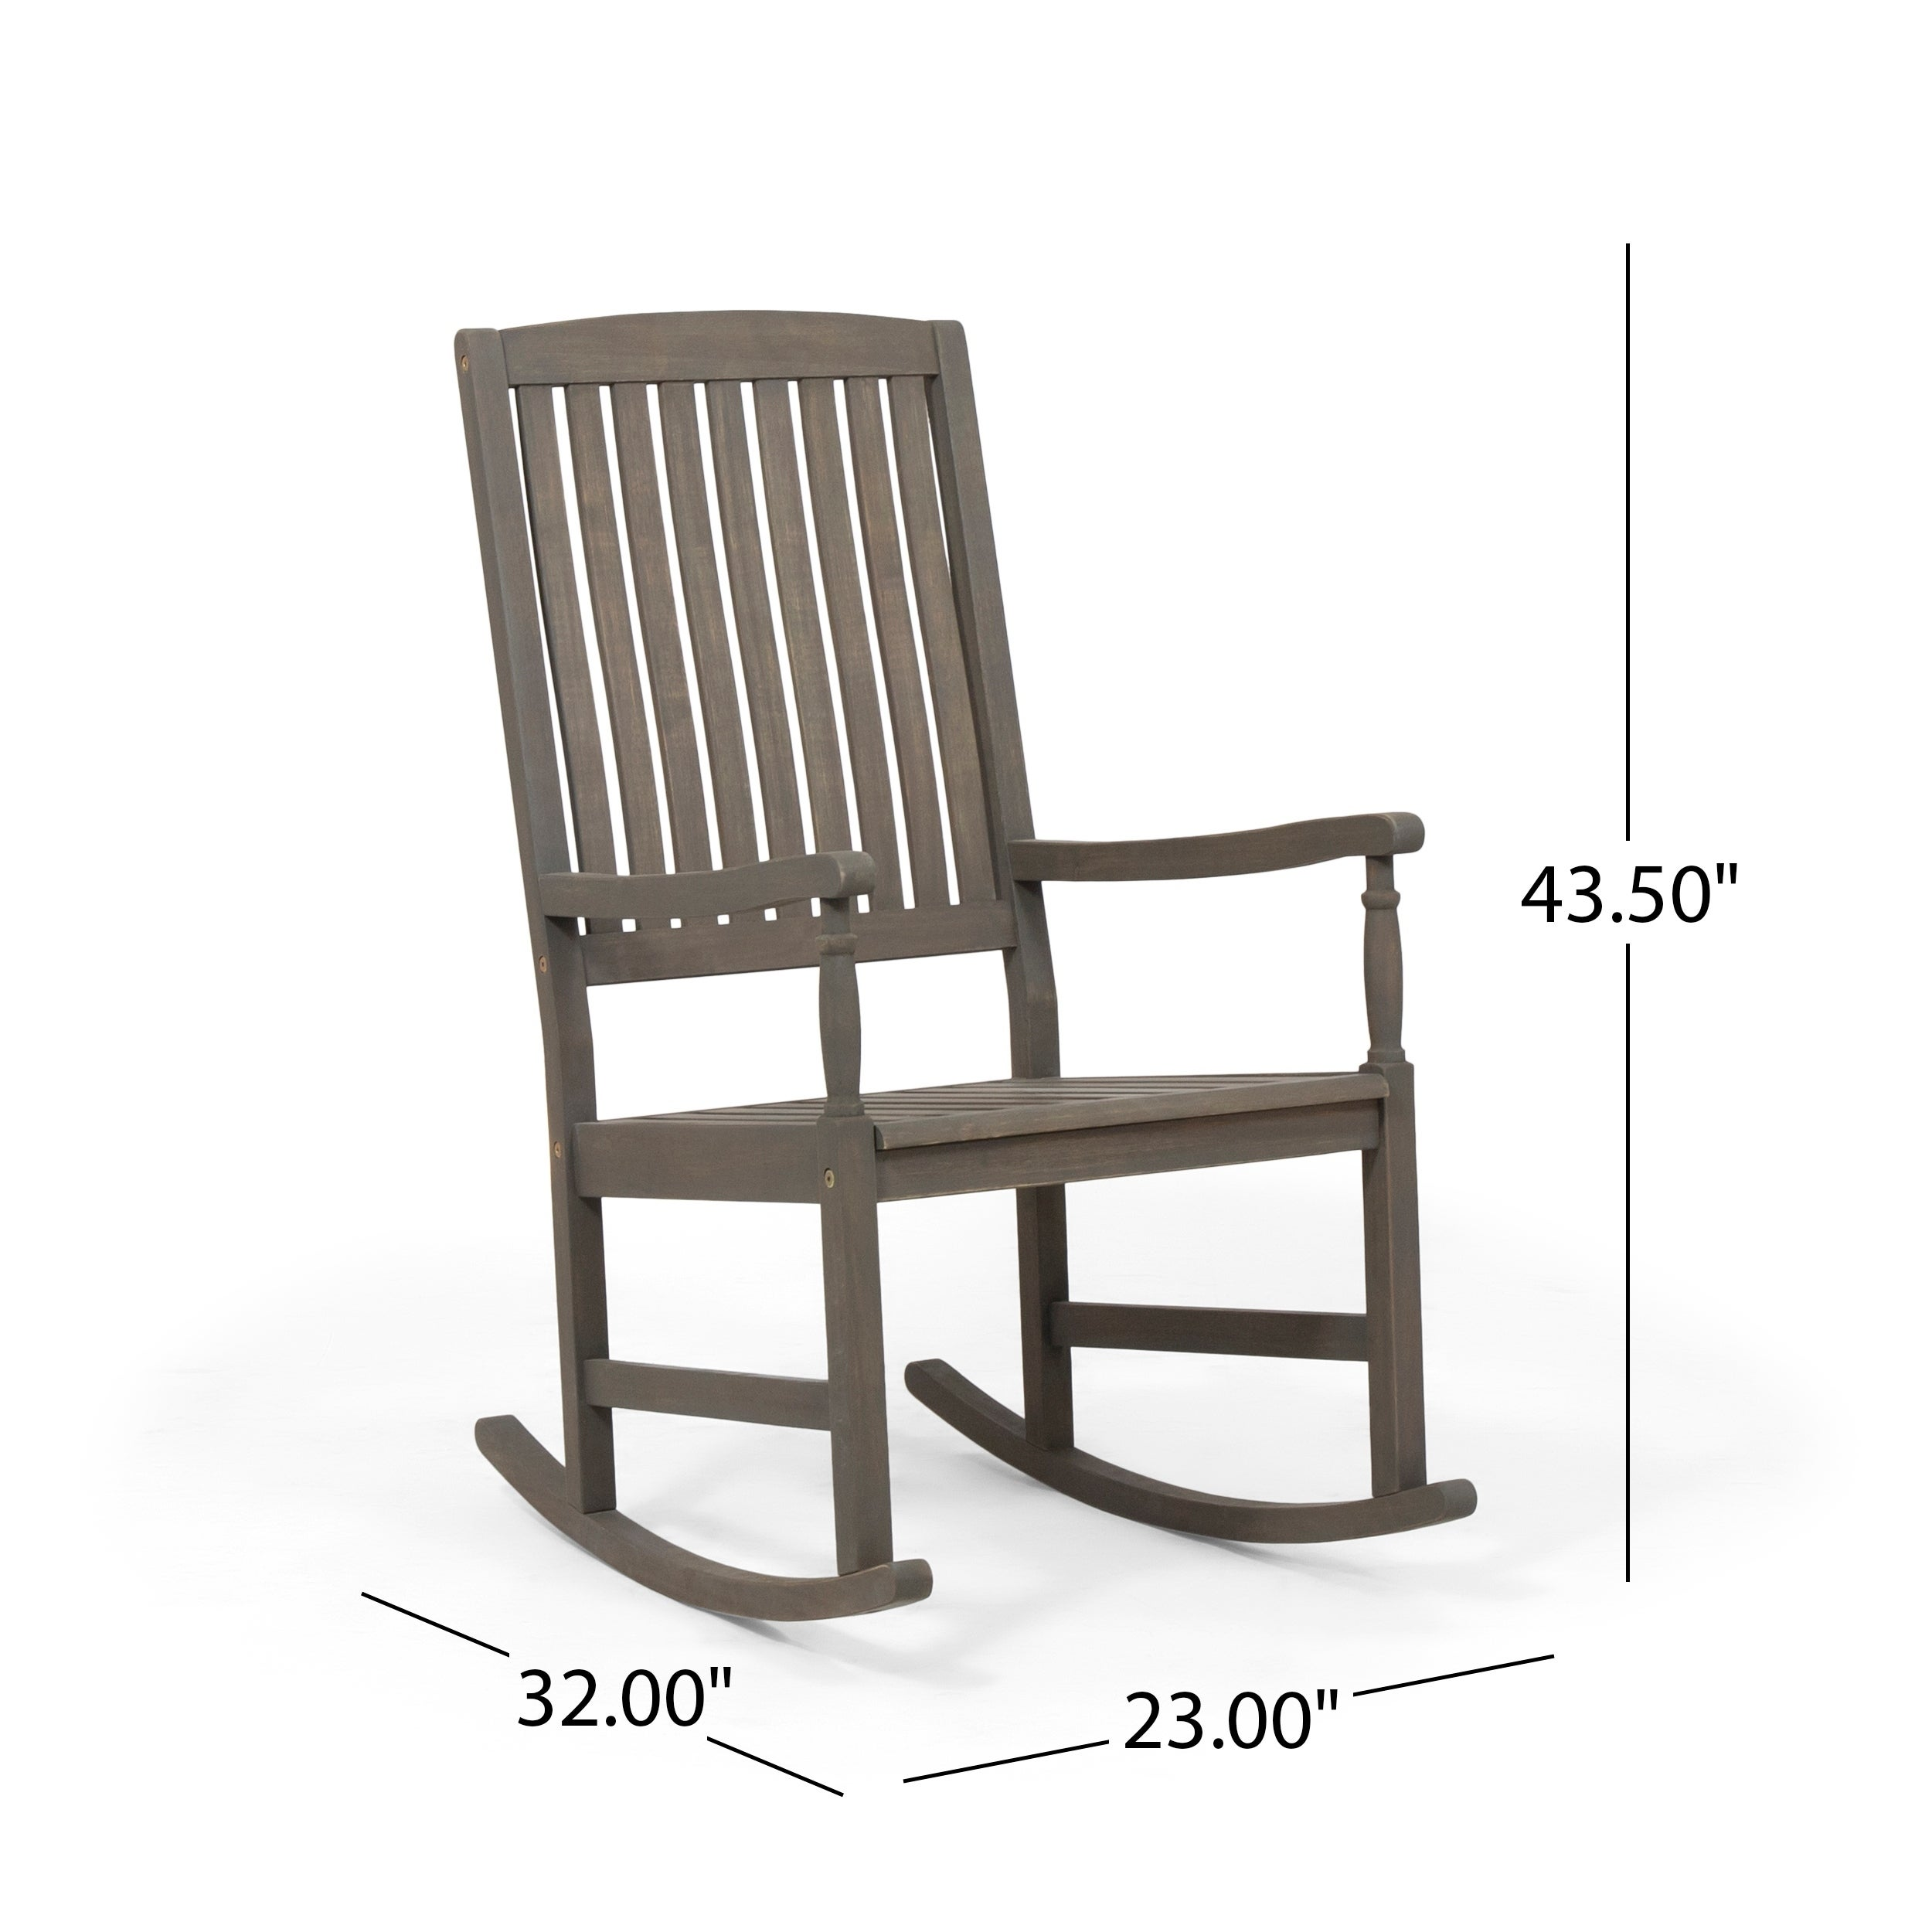 Arcadia Outdoor Acacia Wood Rocking Chair By Christopher Knight Home On Sale Overstock 28072871